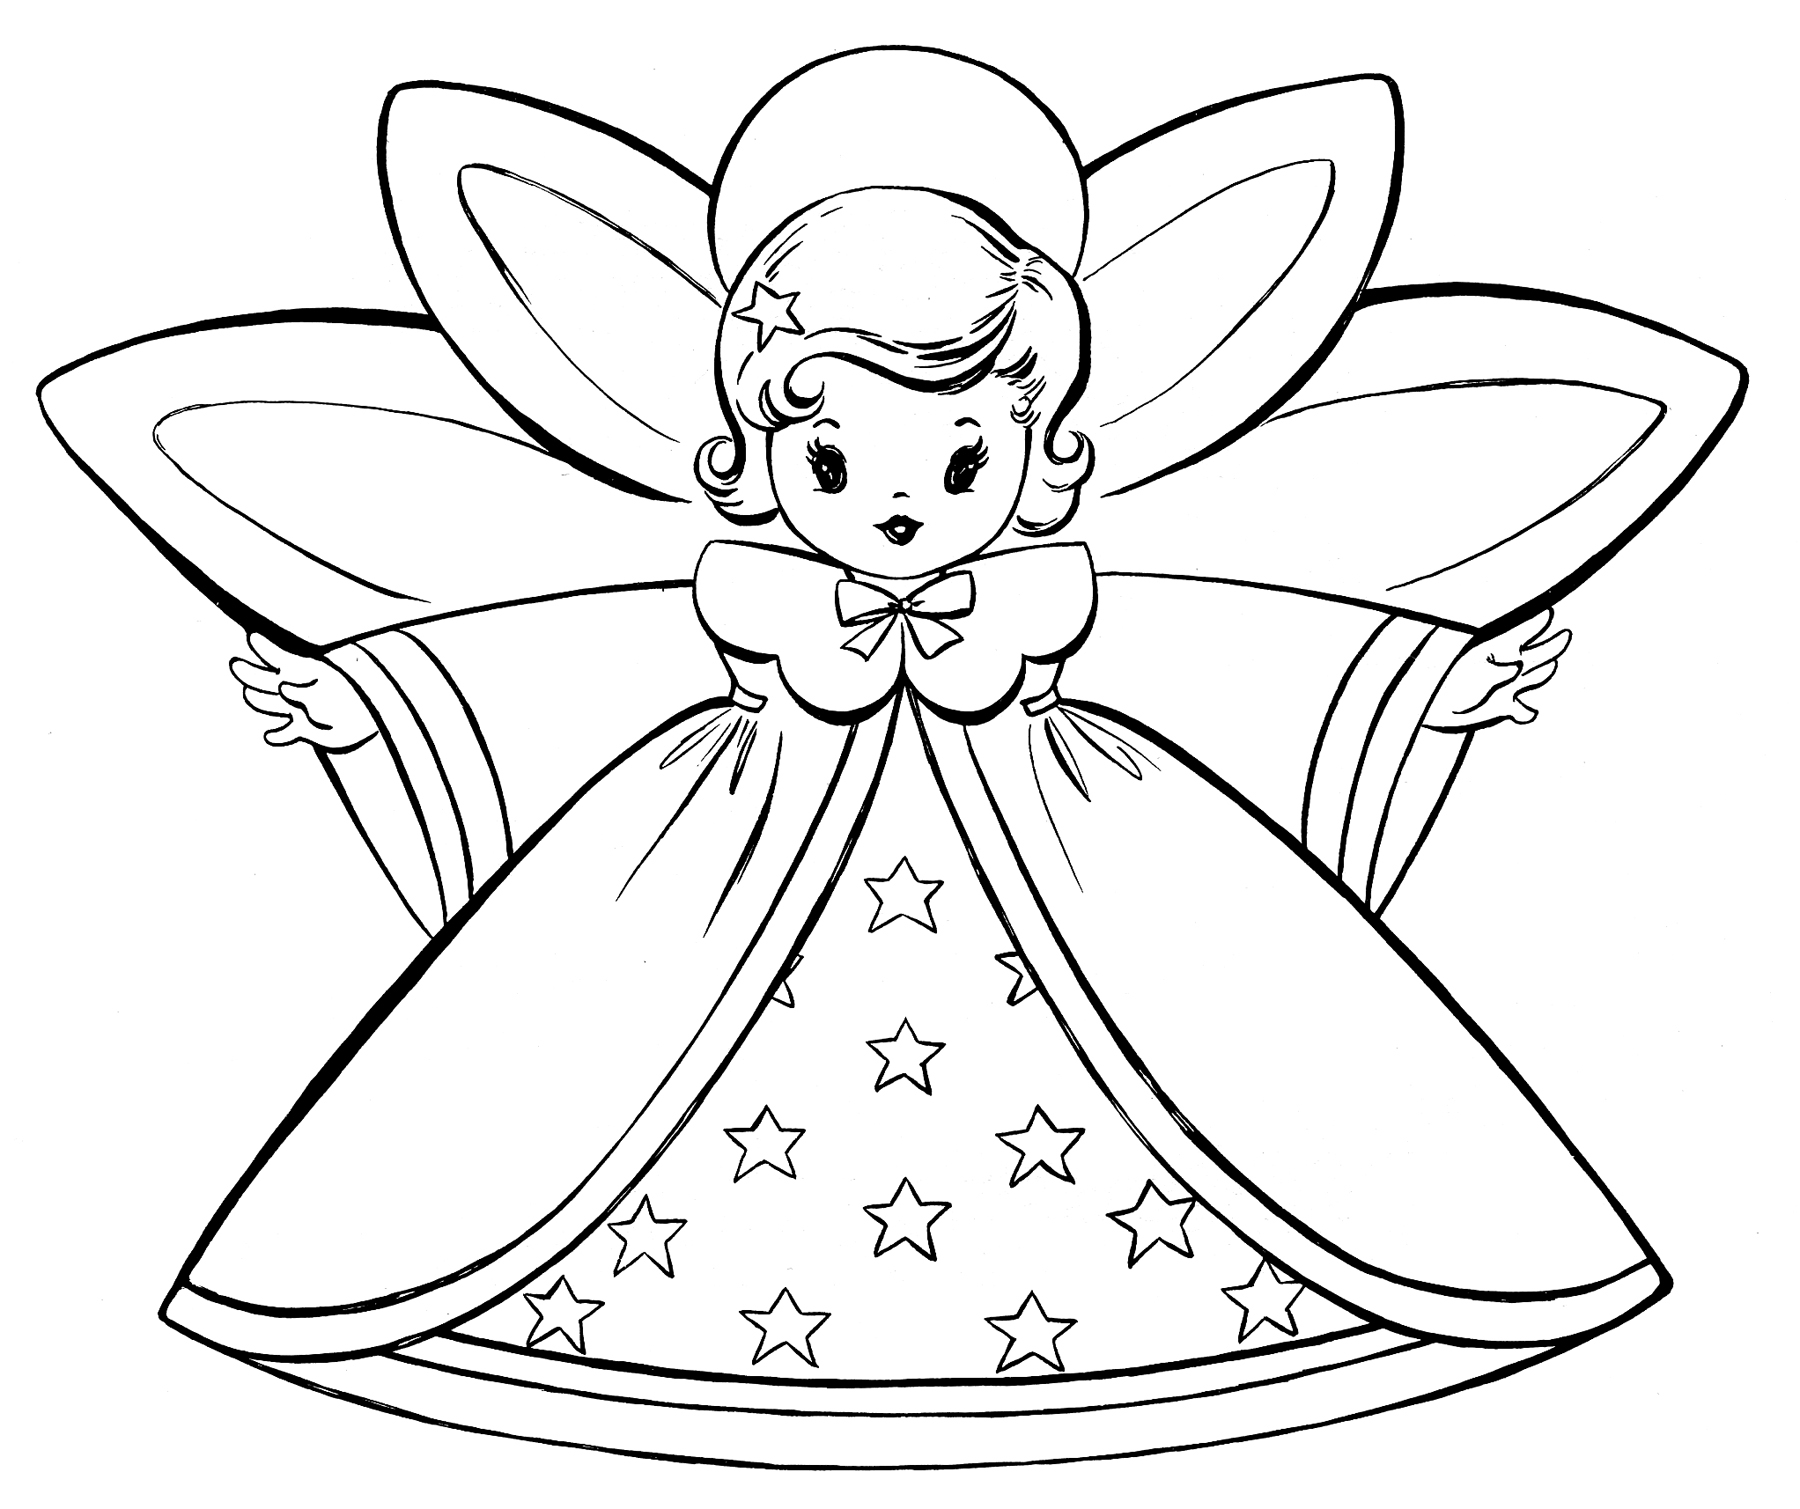 free holiday coloring pages free christmas coloring pages retro angels the holiday free coloring pages